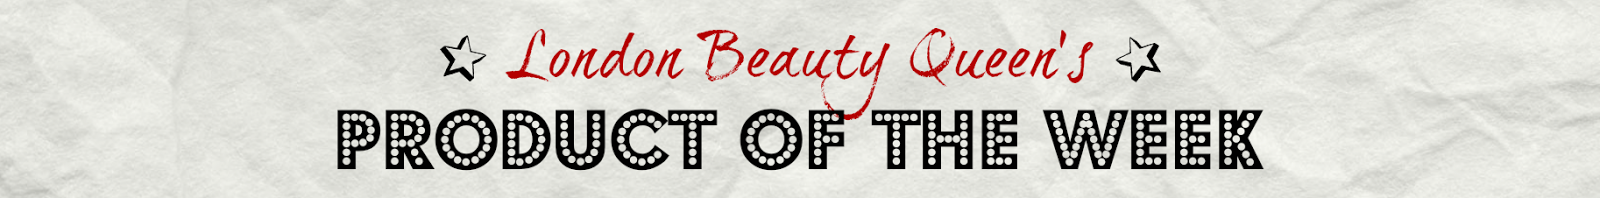 http://www.londonbeautyqueen.com/search/label/LBQ%20Product%20of%20the%20Week